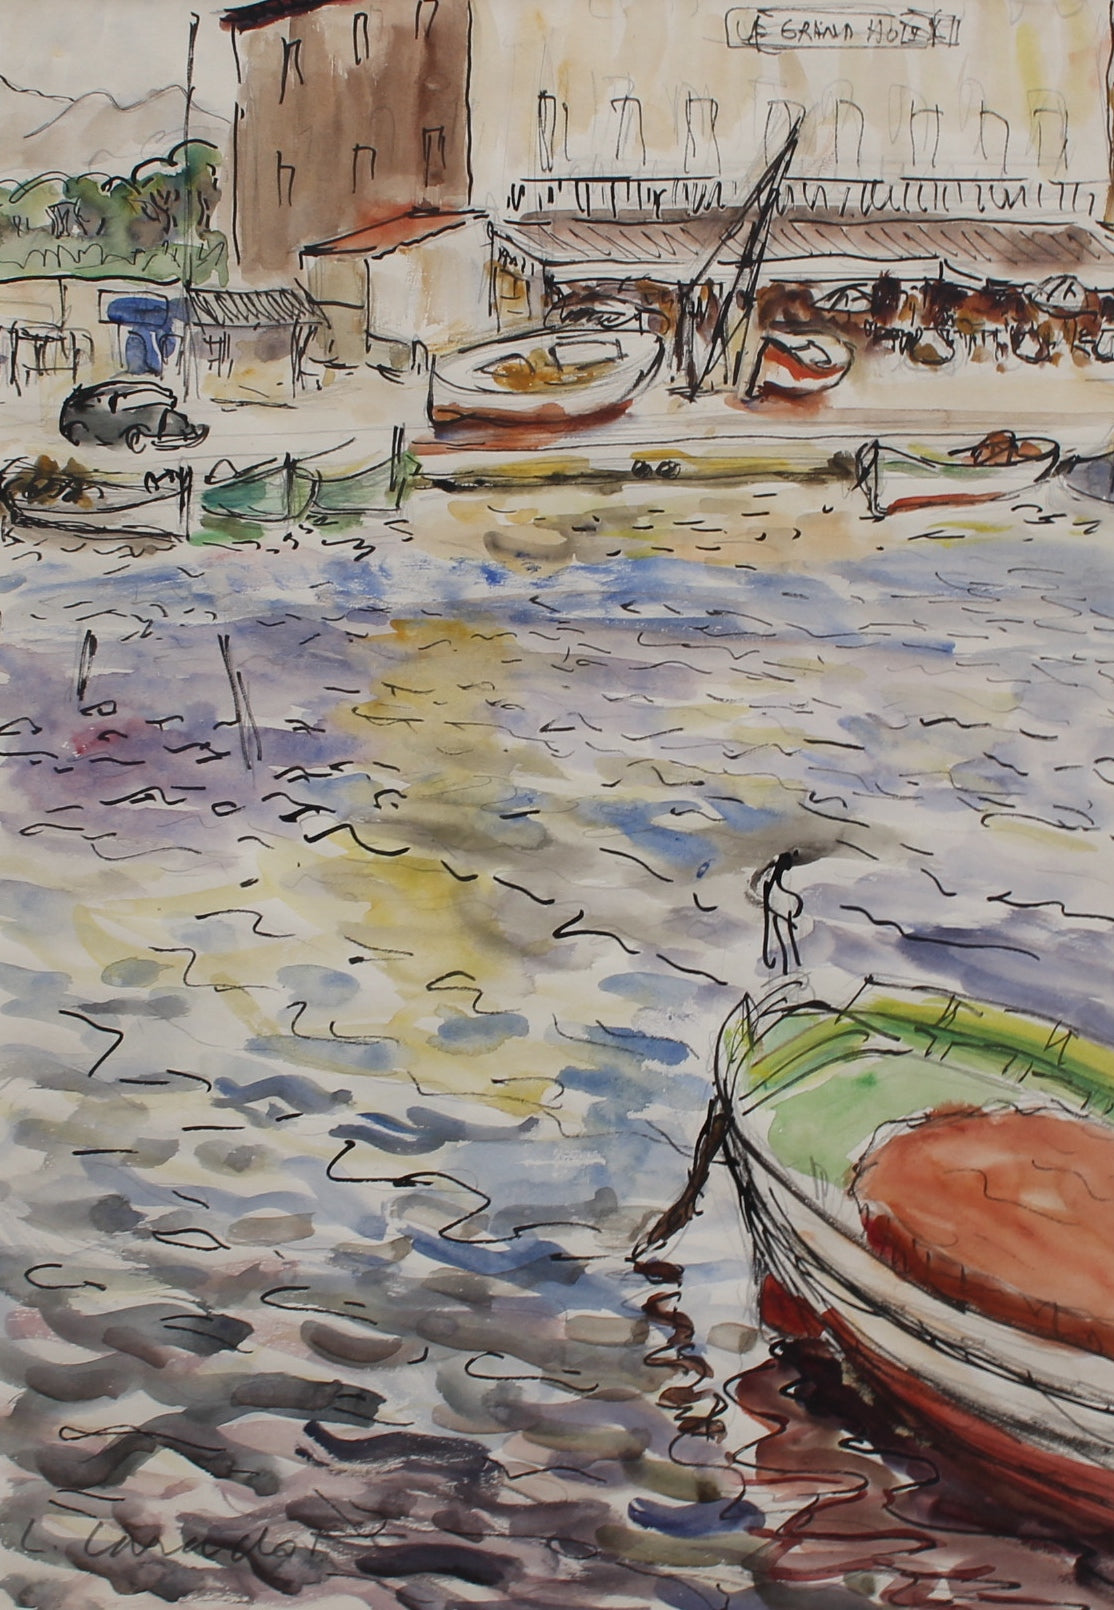 'French Riviera Port' by Louis Carradot (c. 1960s)